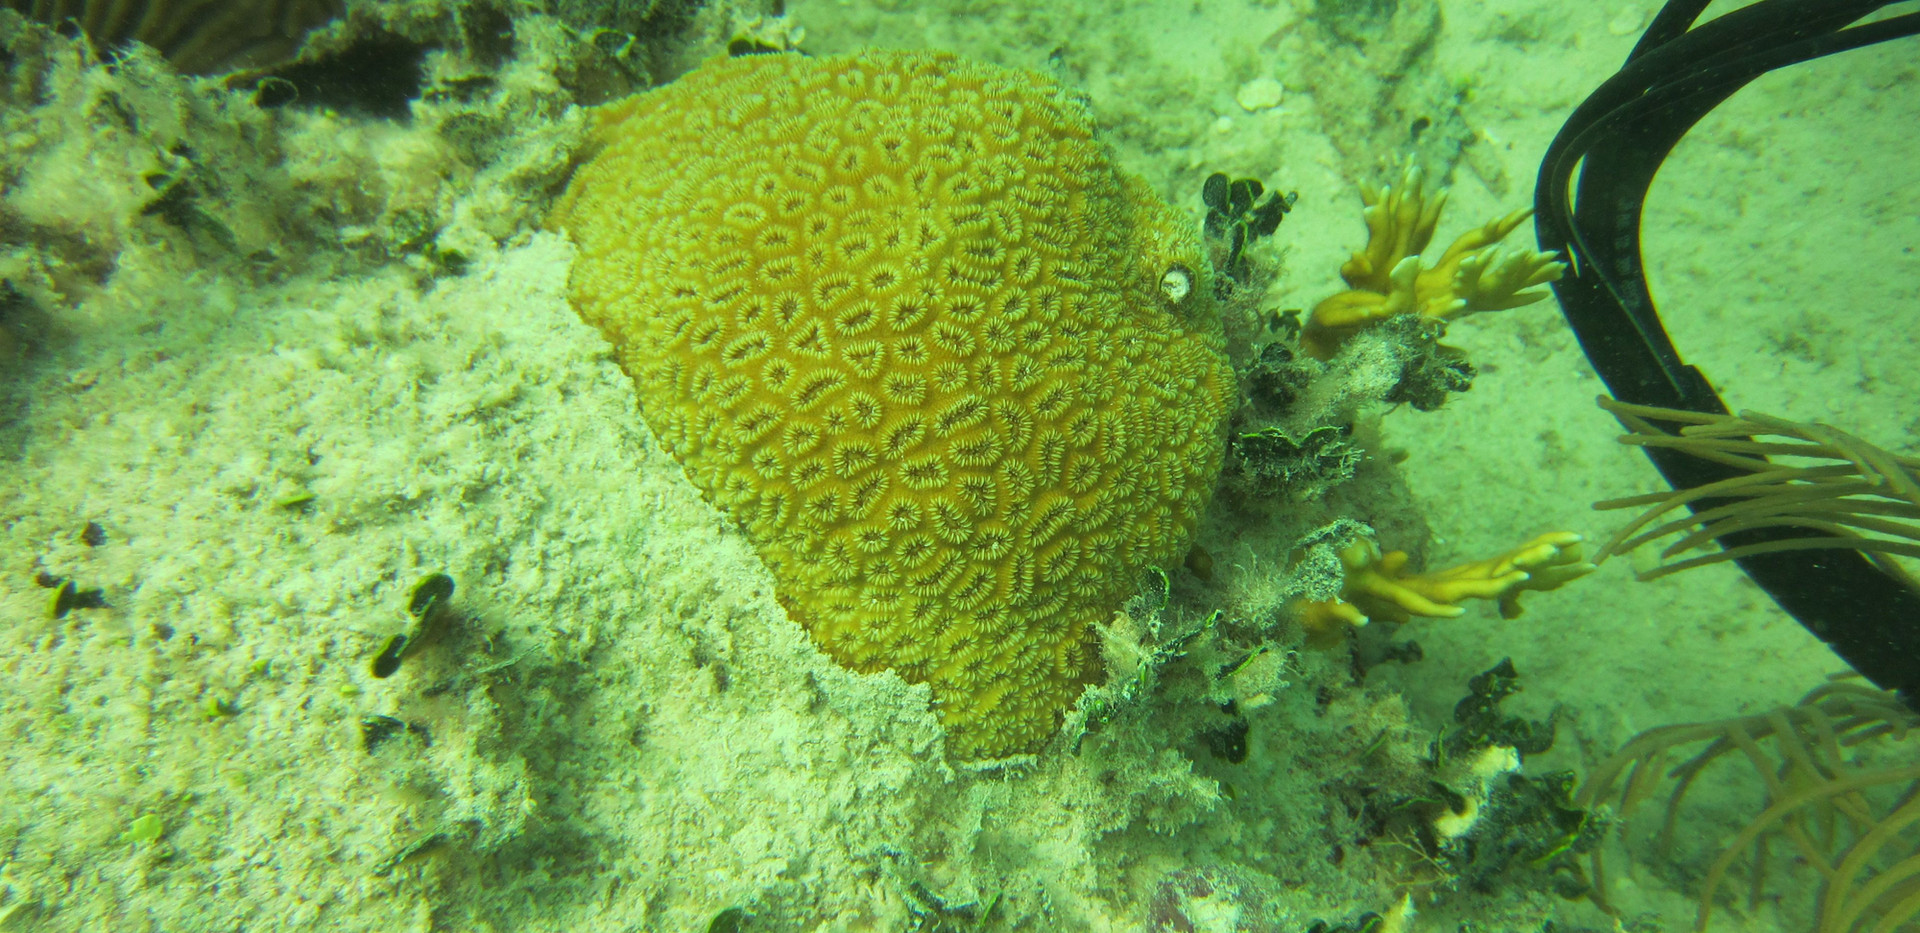 Photo of coral surface minutes after removing CISME, showing no damage to coral